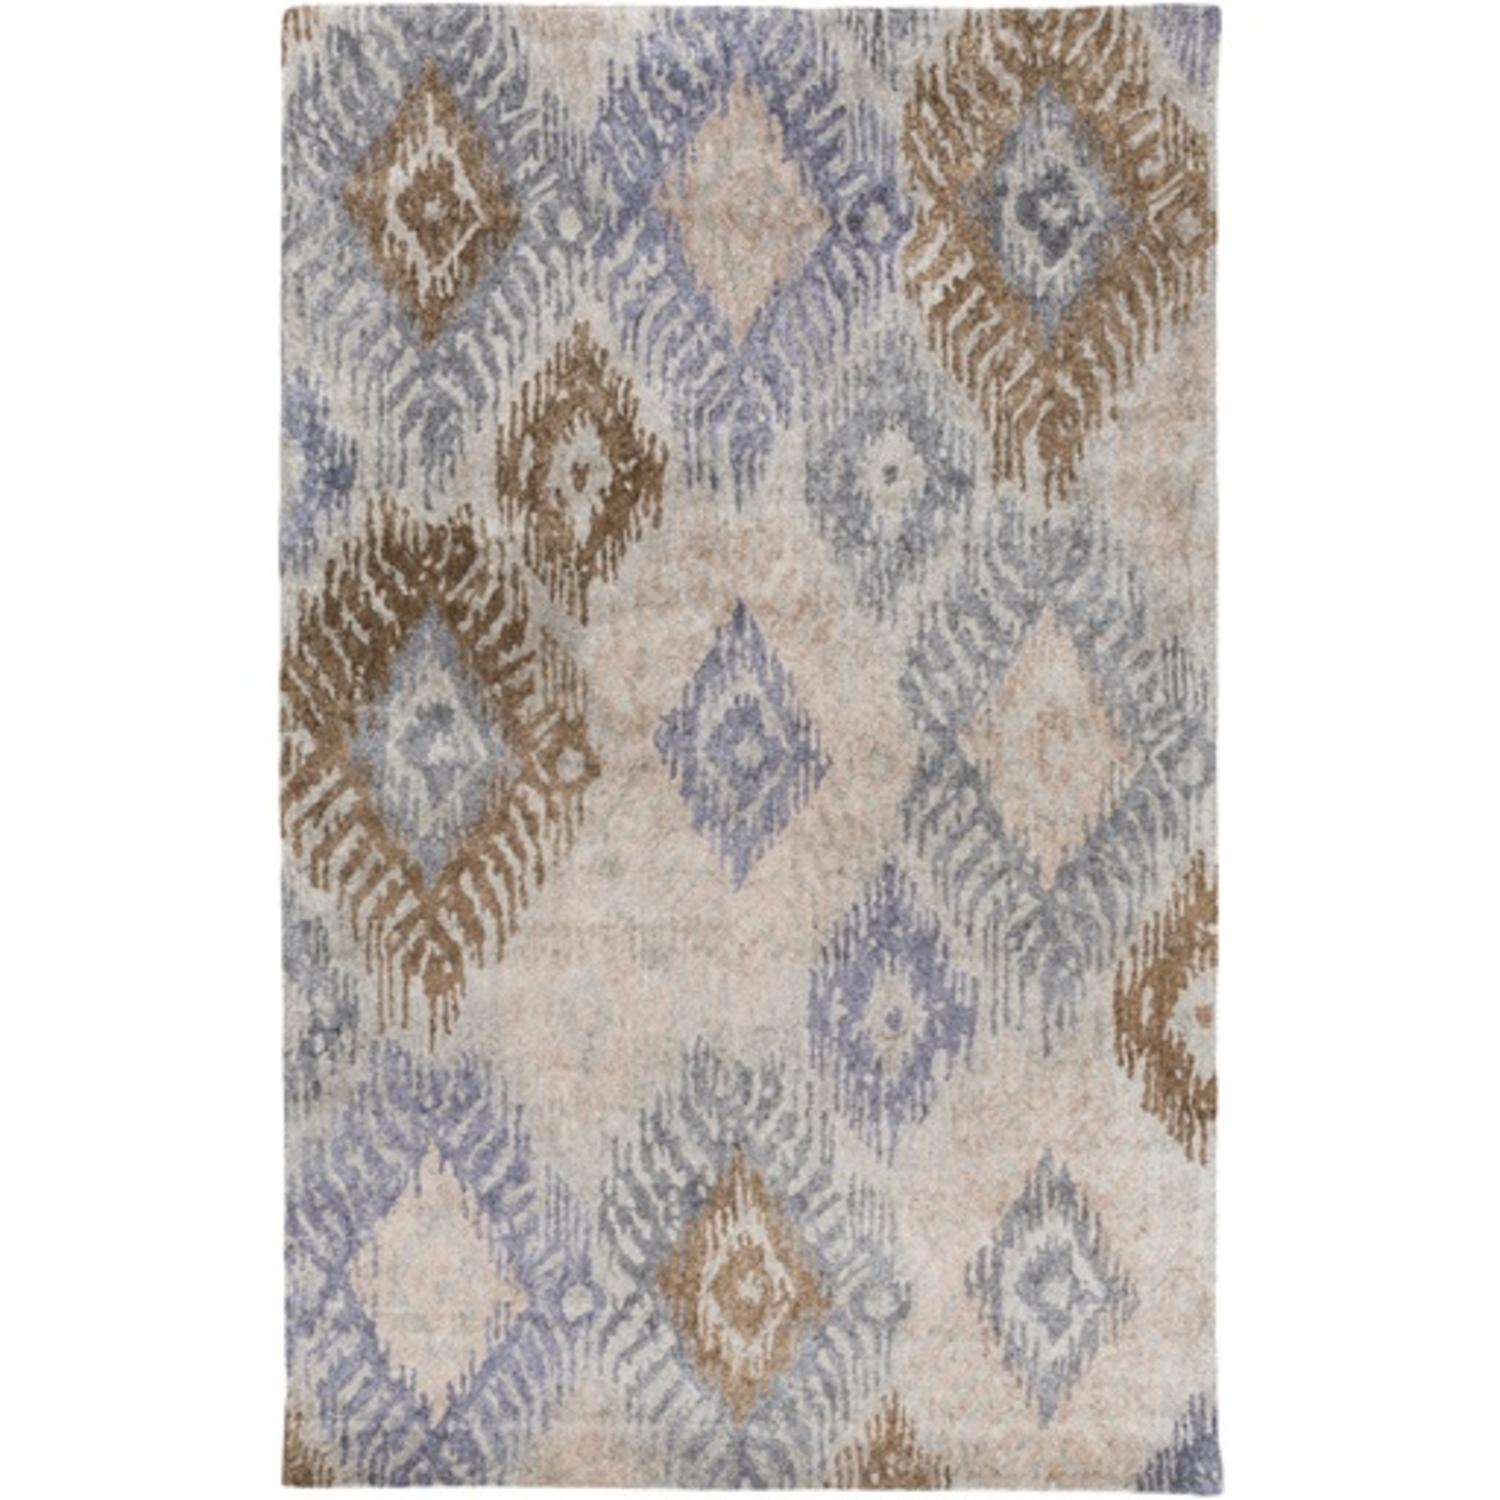 8' x 11' Feathered Diamonds Chocolate Brown, Steel Blue and Slate Gray Hand Tufted Area Throw Rug